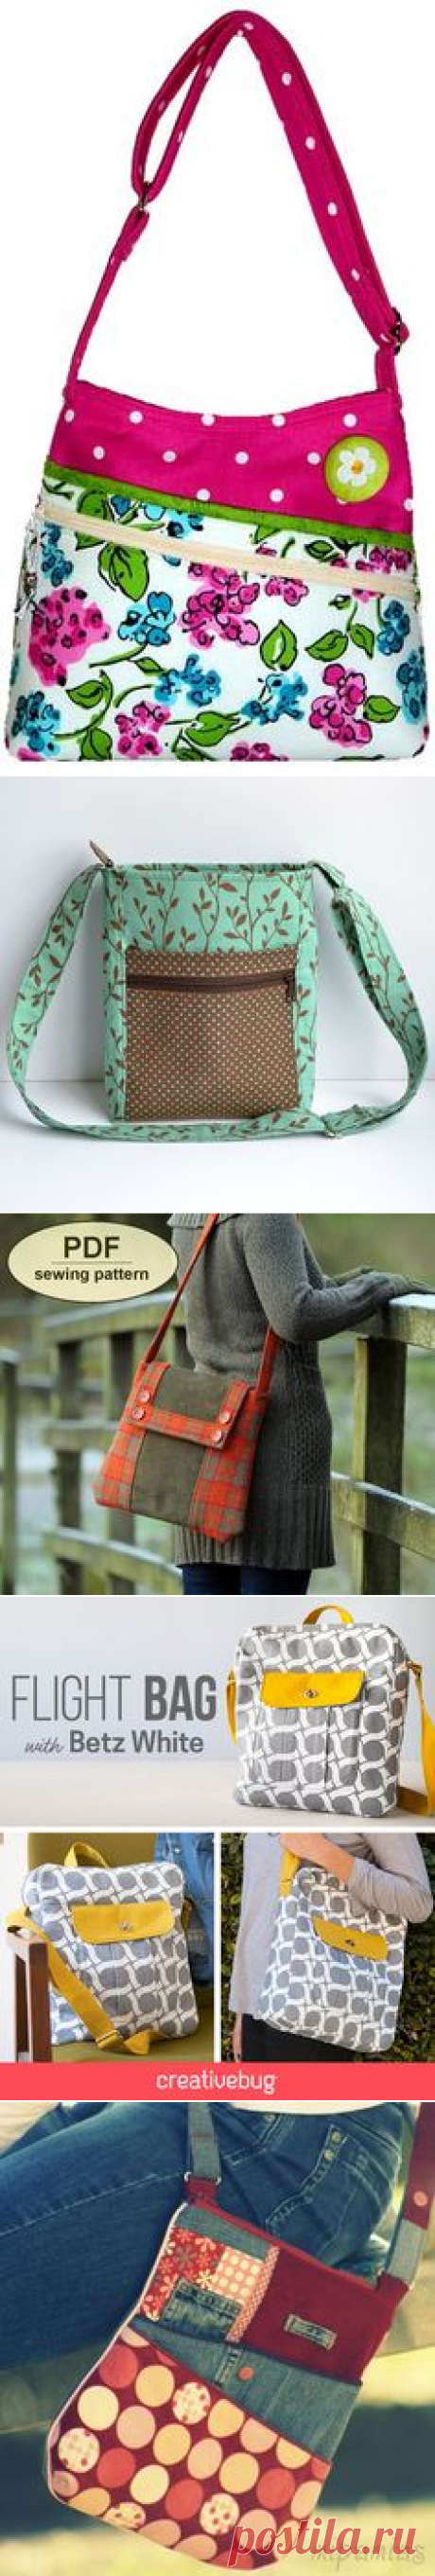 (74) Designer Hipster Cross Body Bag Pattern PDF for sewing your own Purse. Serendipity Hip by ChrisW Designs